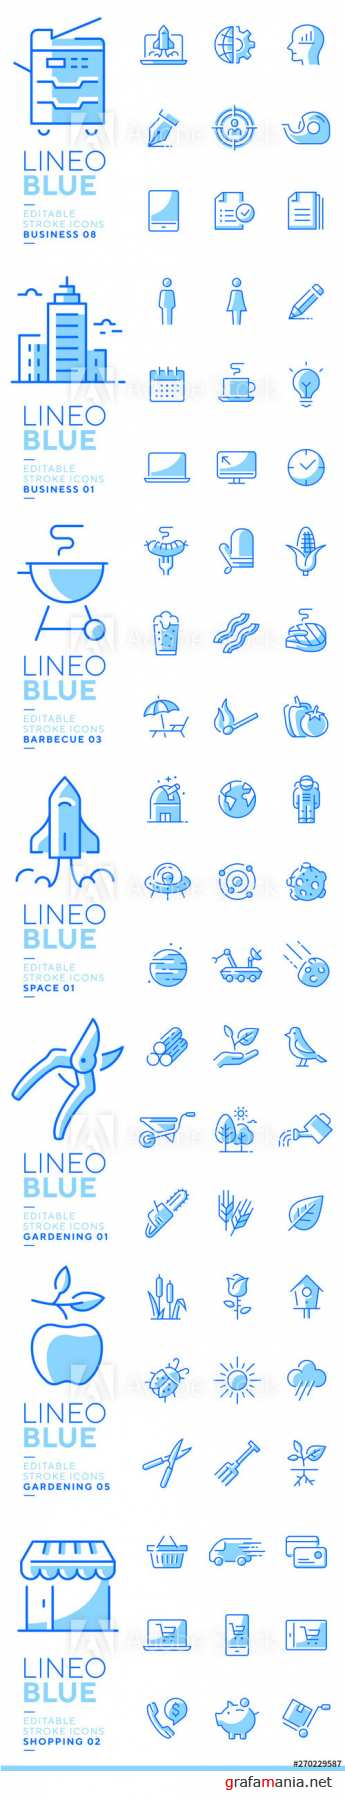 Lineo Blue - Line Vector Icons Pack Vol 5